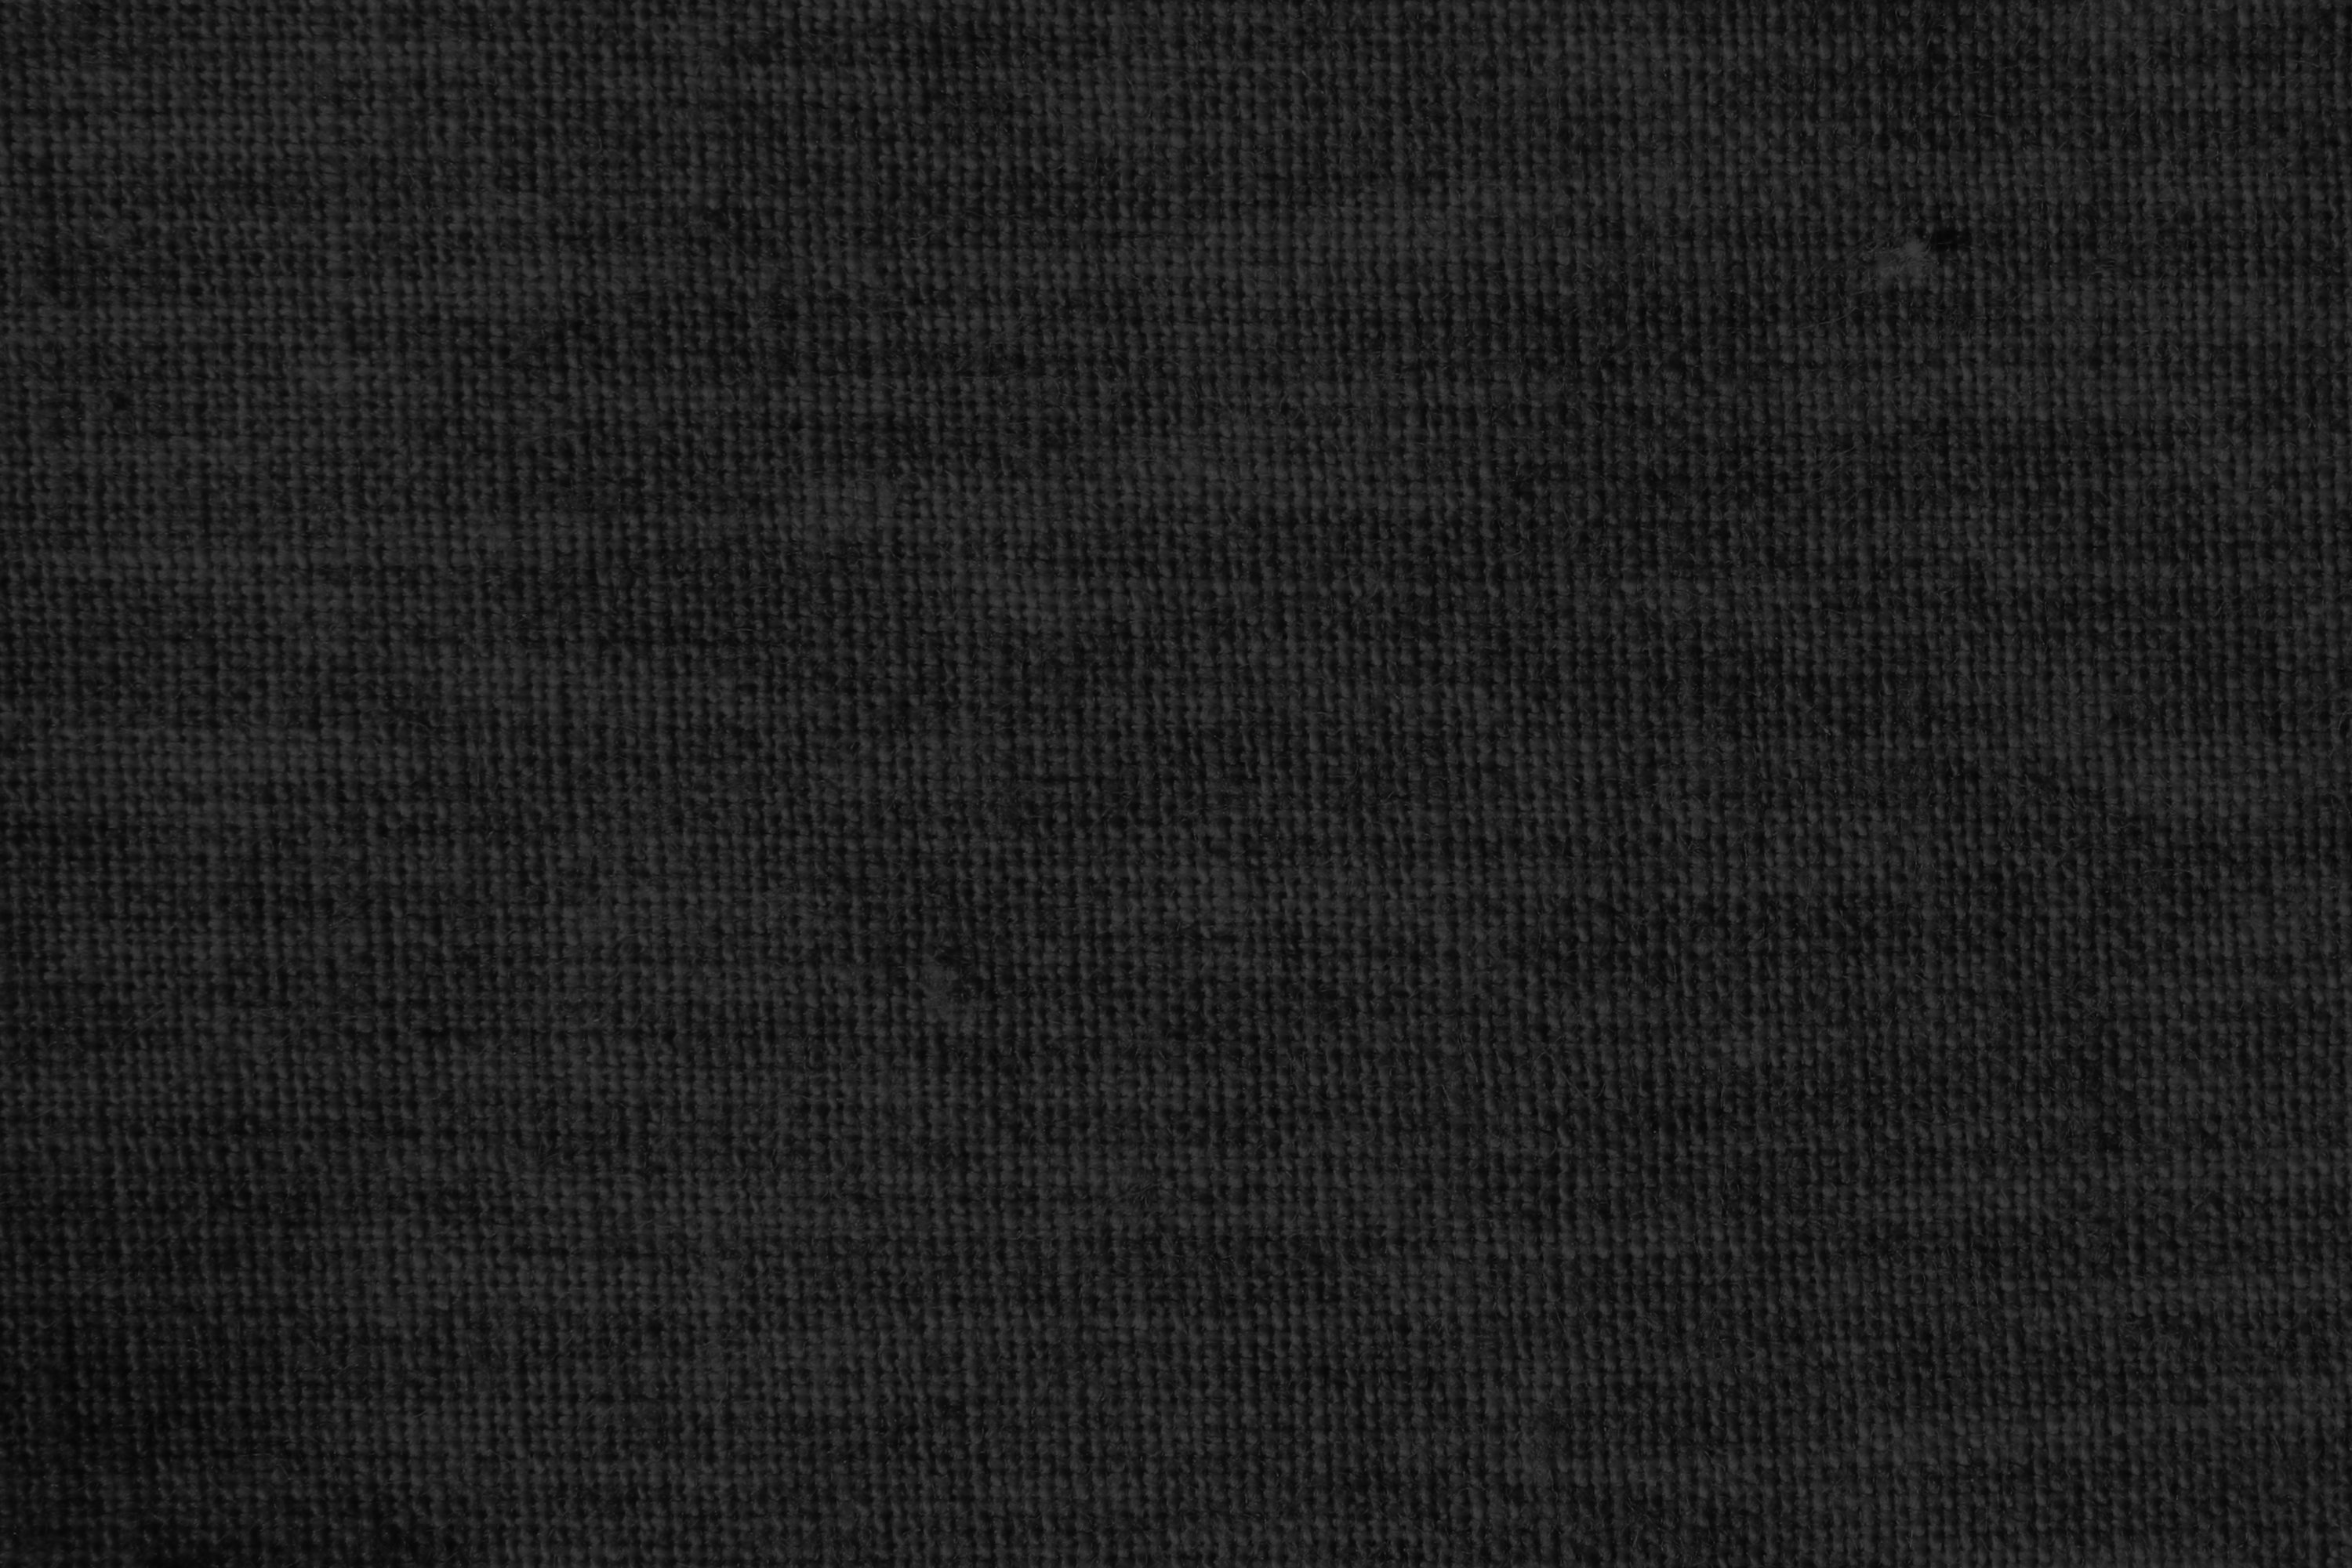 Black woven fabric close up texture picture free for Black fabric